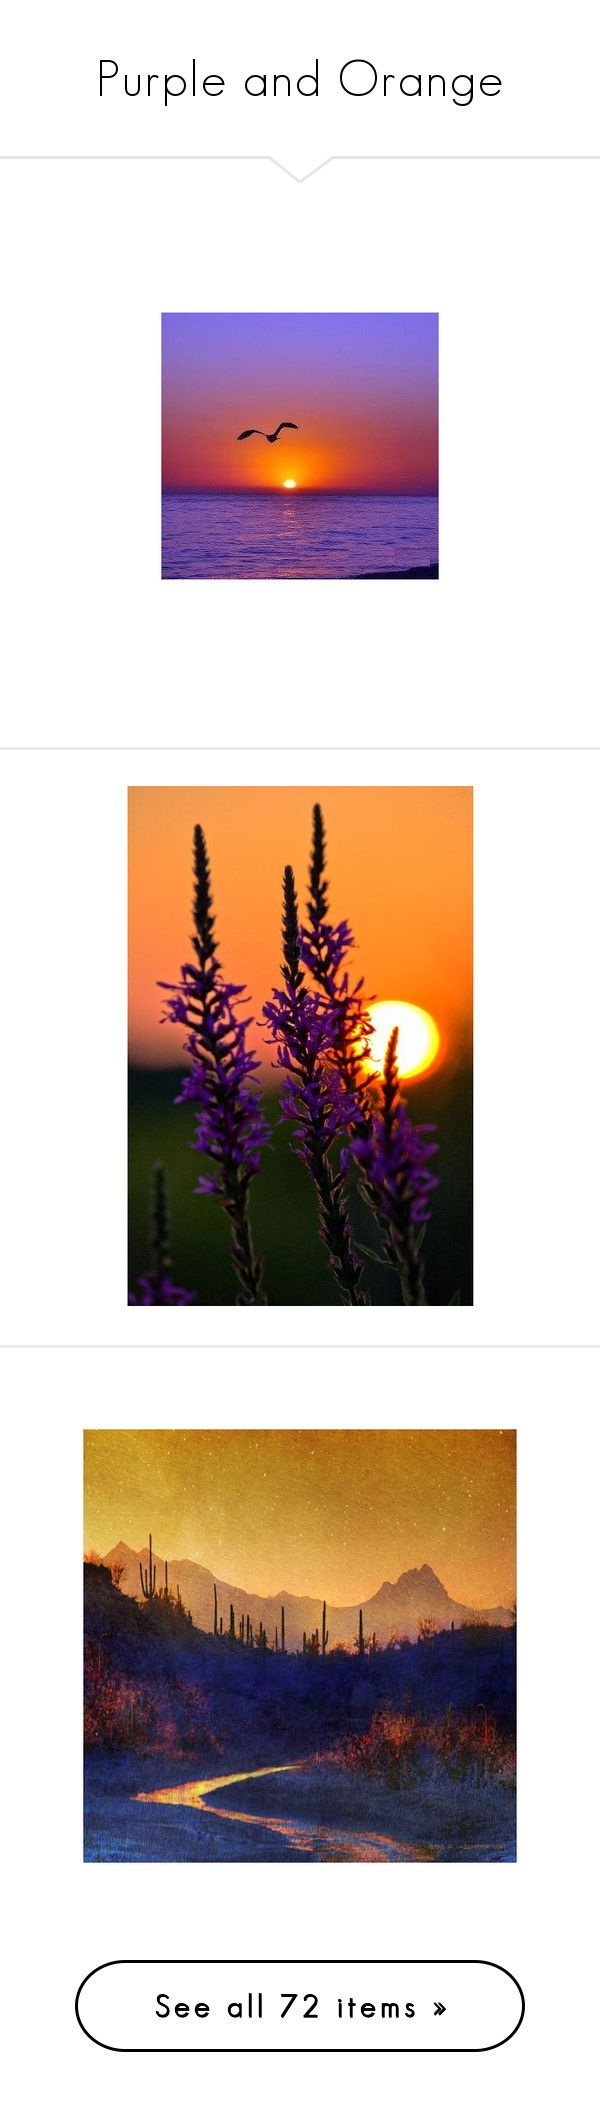 """""""Purple and Orange"""" by funkyjunkygypsy ❤ liked on Polyvore featuring home, home decor, wall art, canvas art, wall decor, landscape painting, sunset painting, canvas painting, landscape canvas wall art and landscape wall art"""